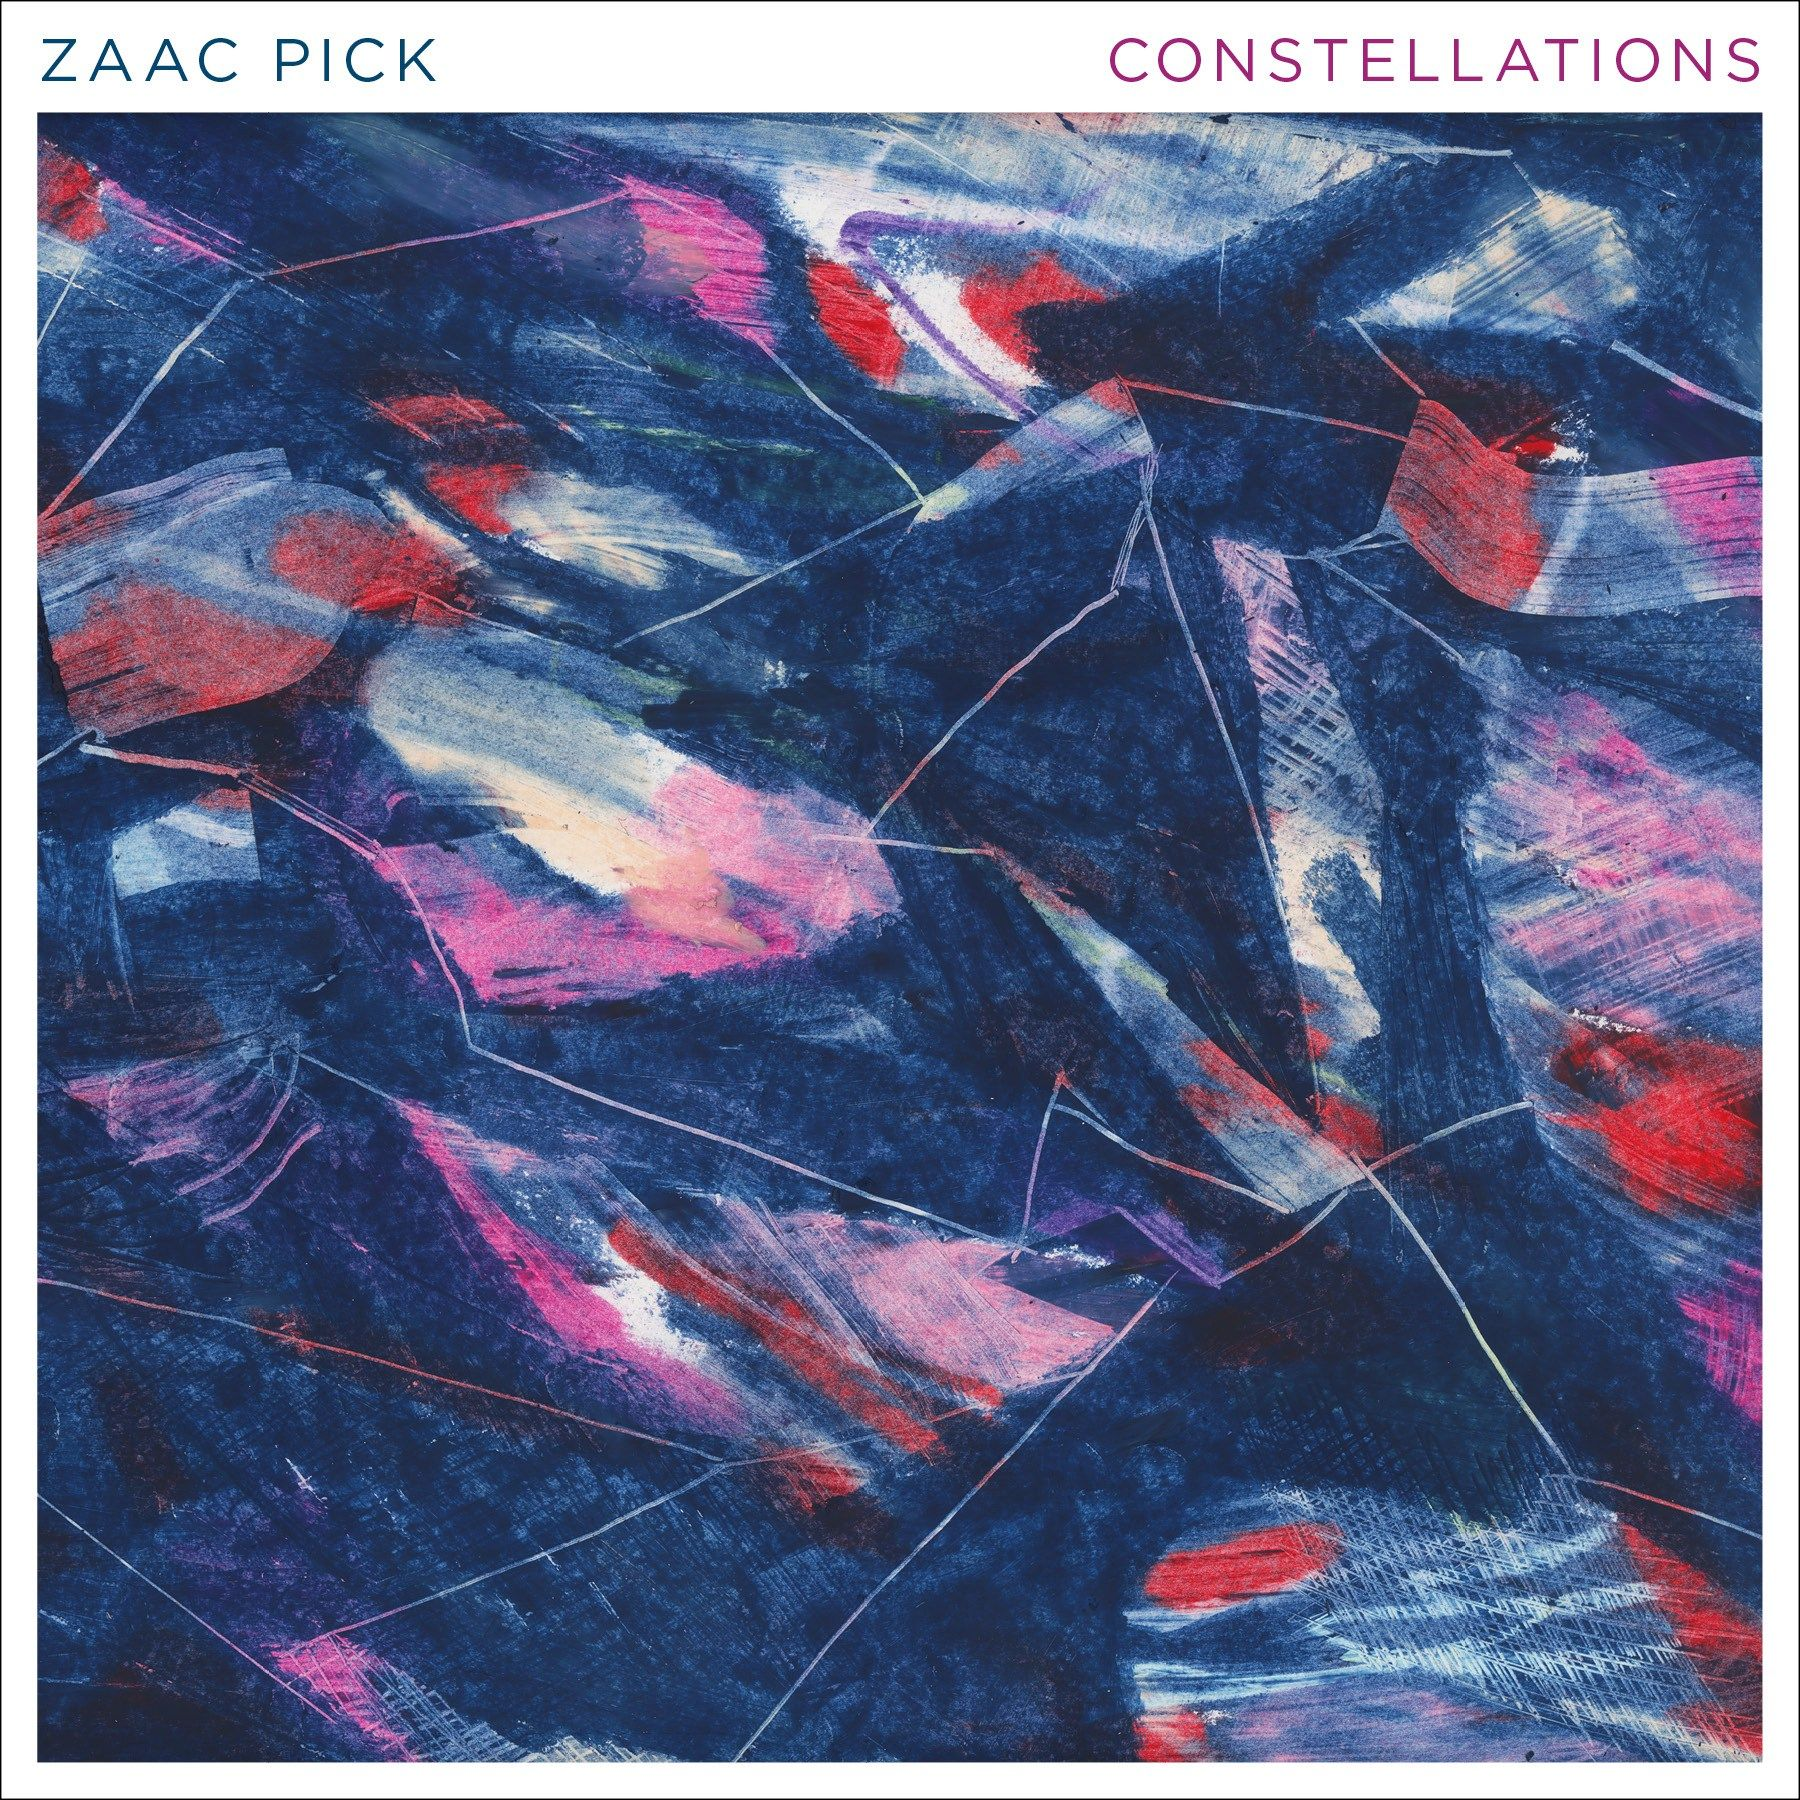 Zaac-Pick-Constellations-Album-Cover-Artwork-1.3MB.jpeg (1800×1800)